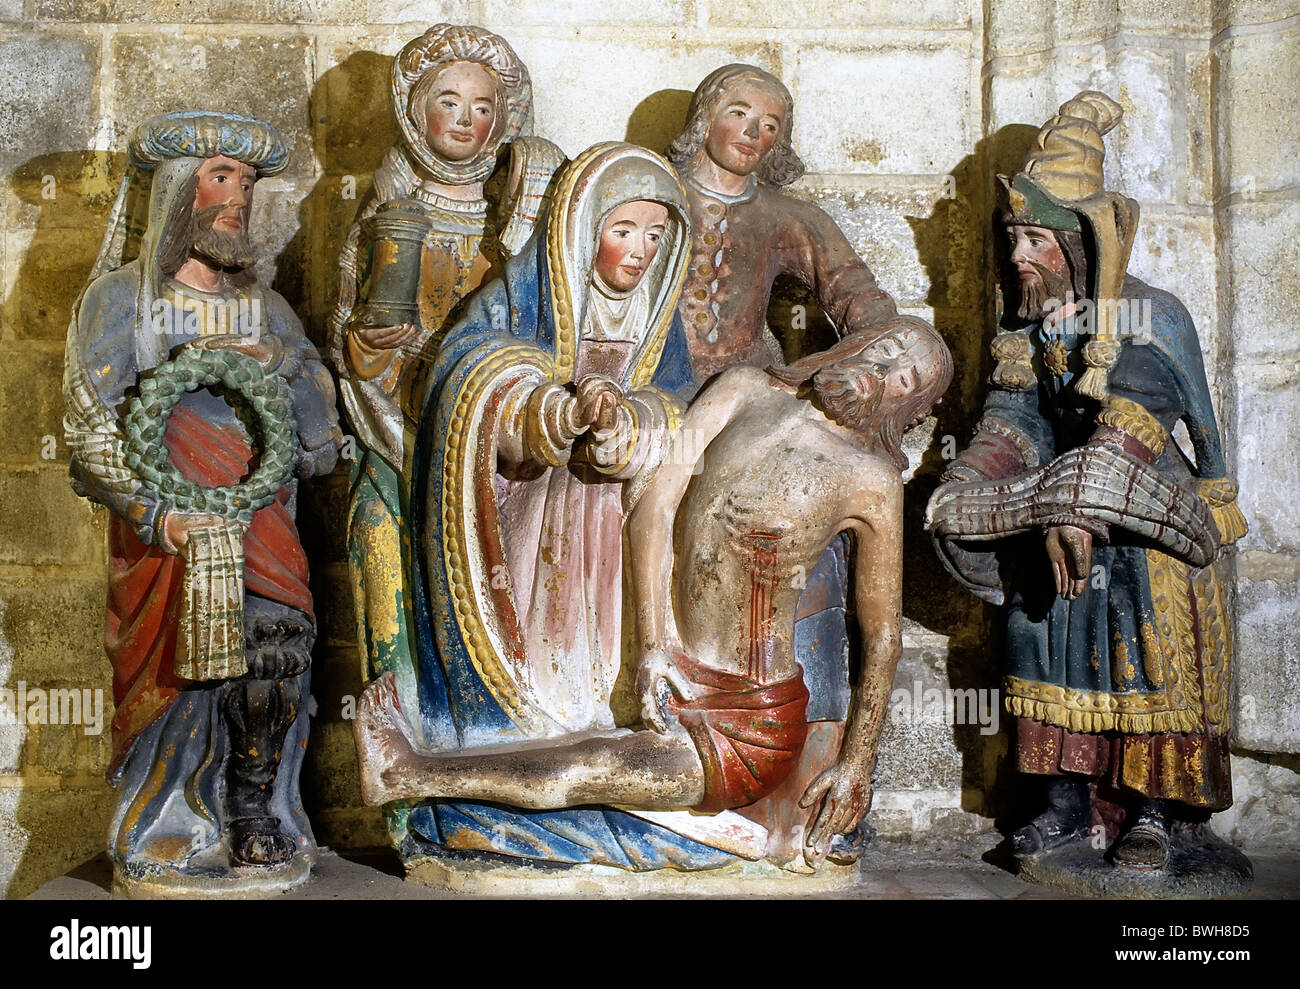 Entombment of Christ, carved sculptures, church of St. Roman, Locronan, Finistere, Brittany, France, Europe - Stock Image